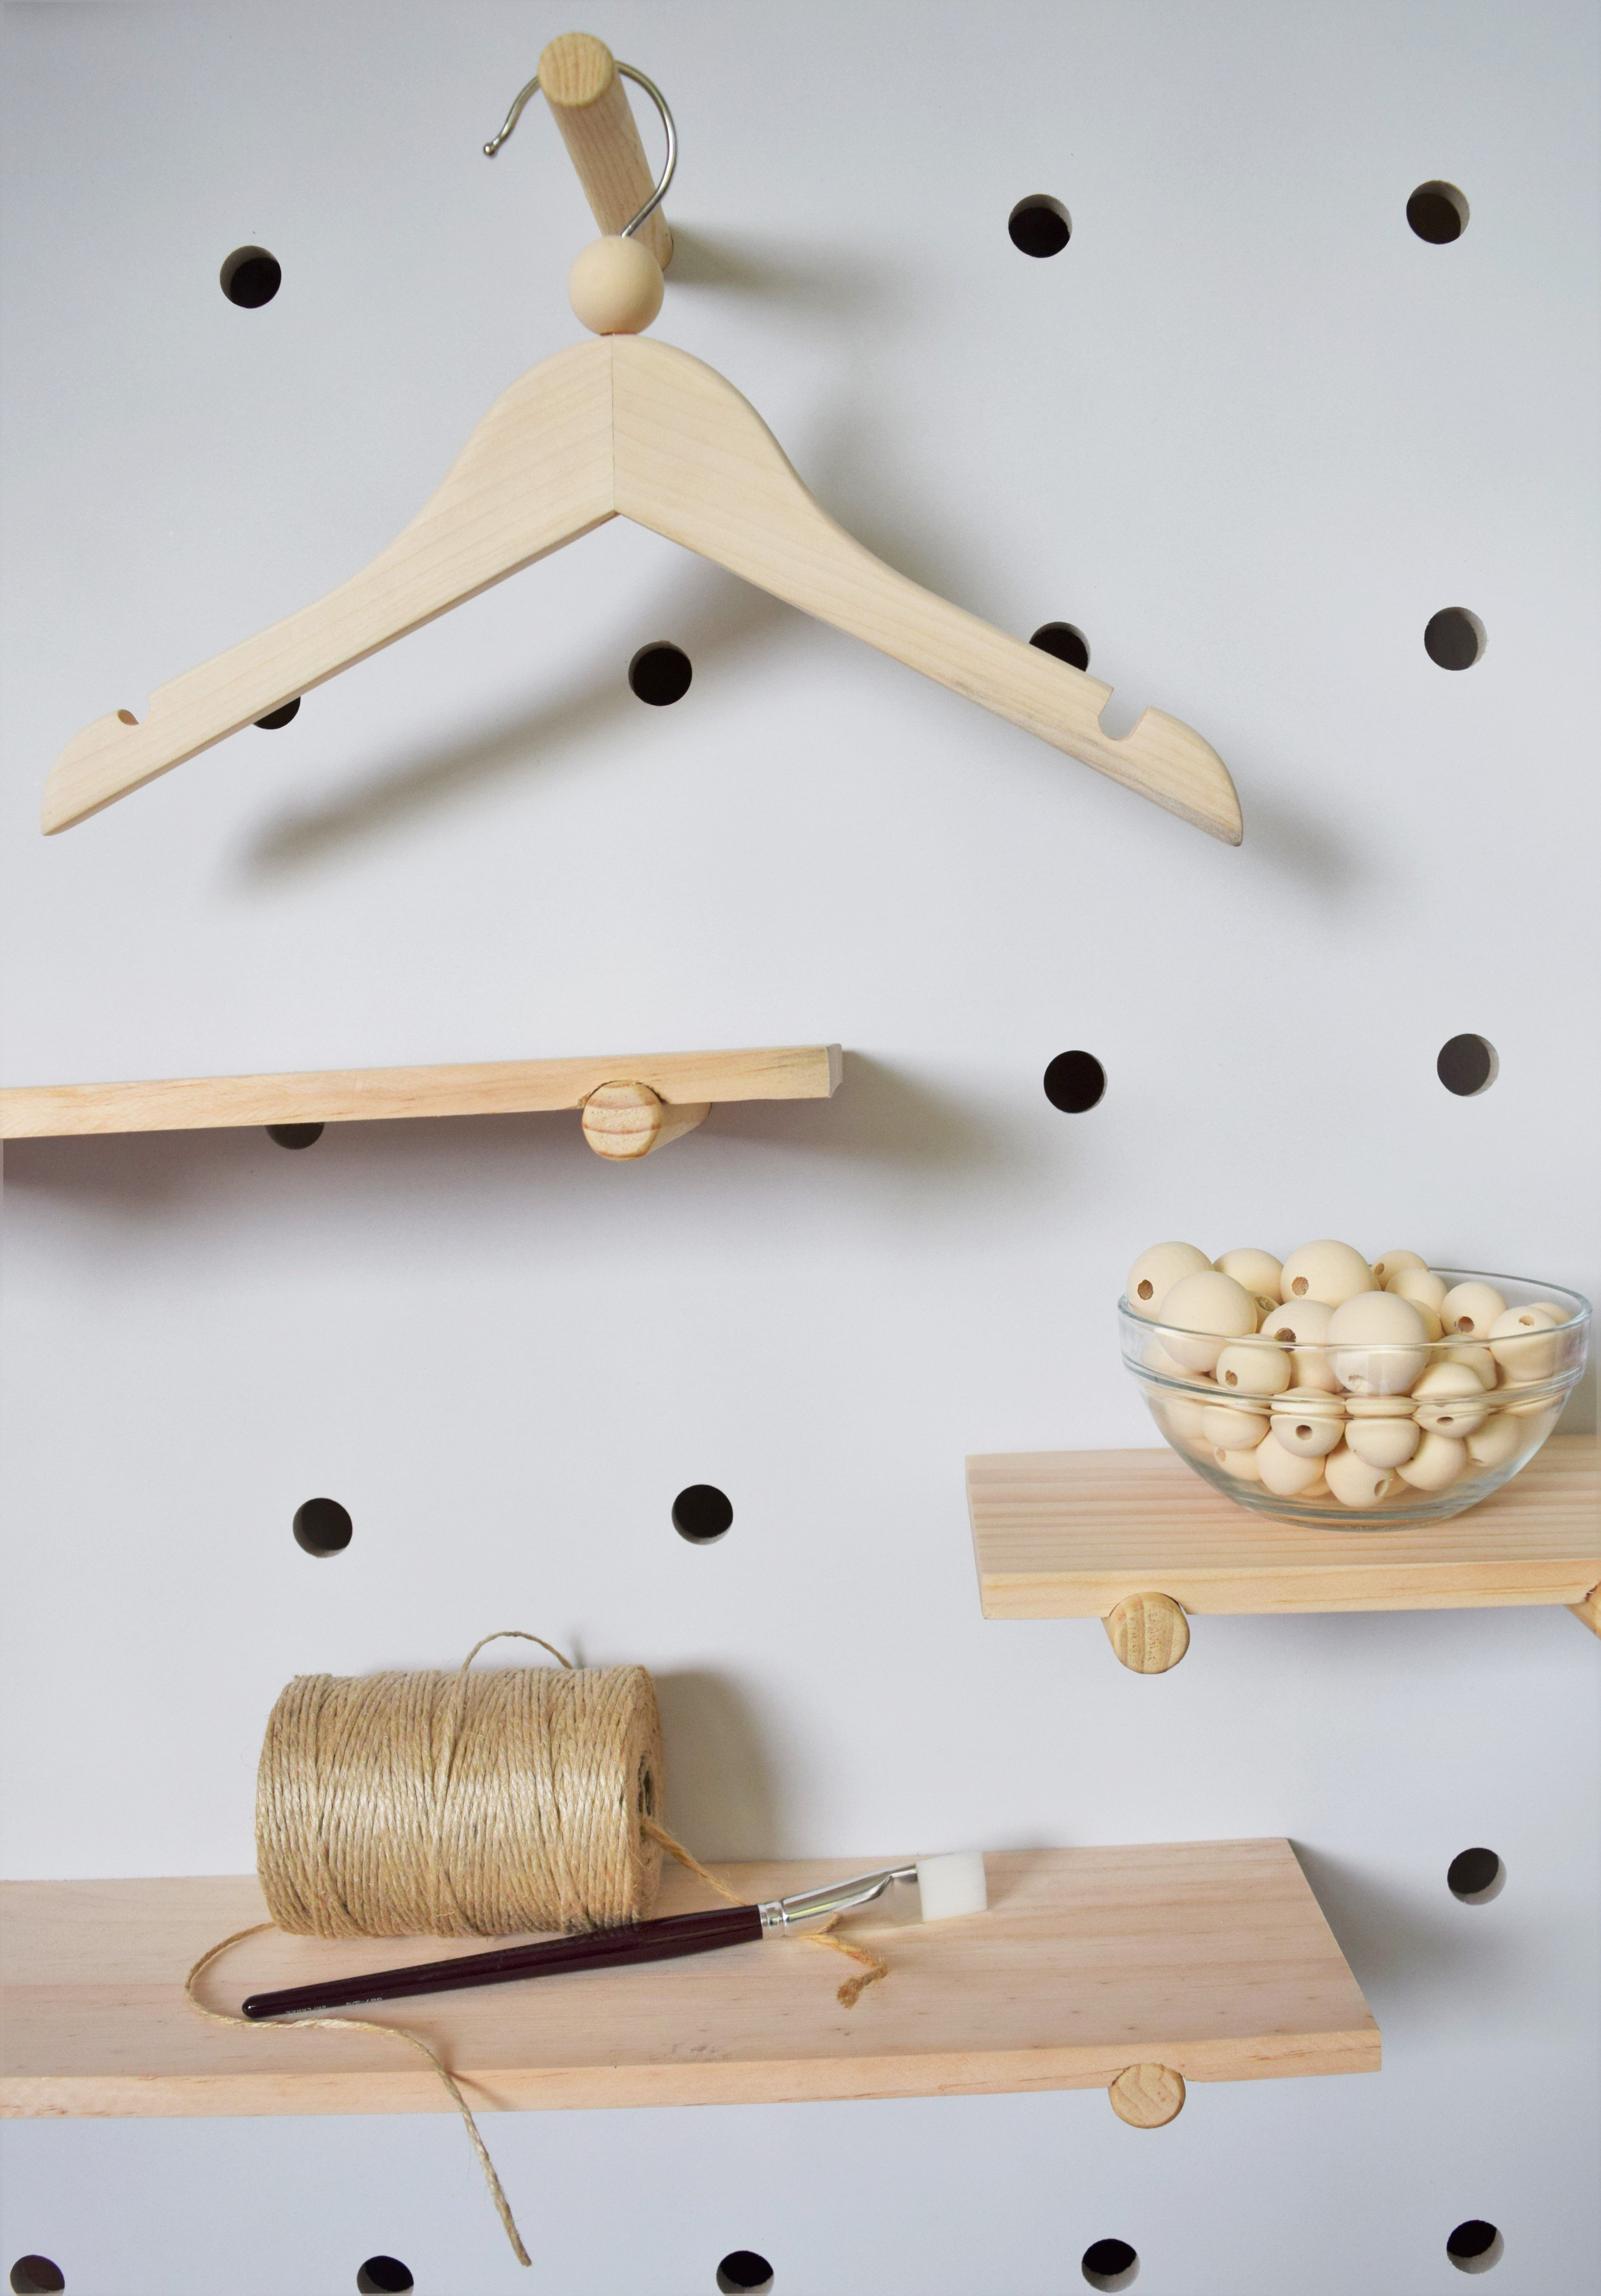 Baby Bebe Kids Children Wooden Bead Coat Hanger Antique White Feature Bead Kids Hangers Hanger Handmade Wooden